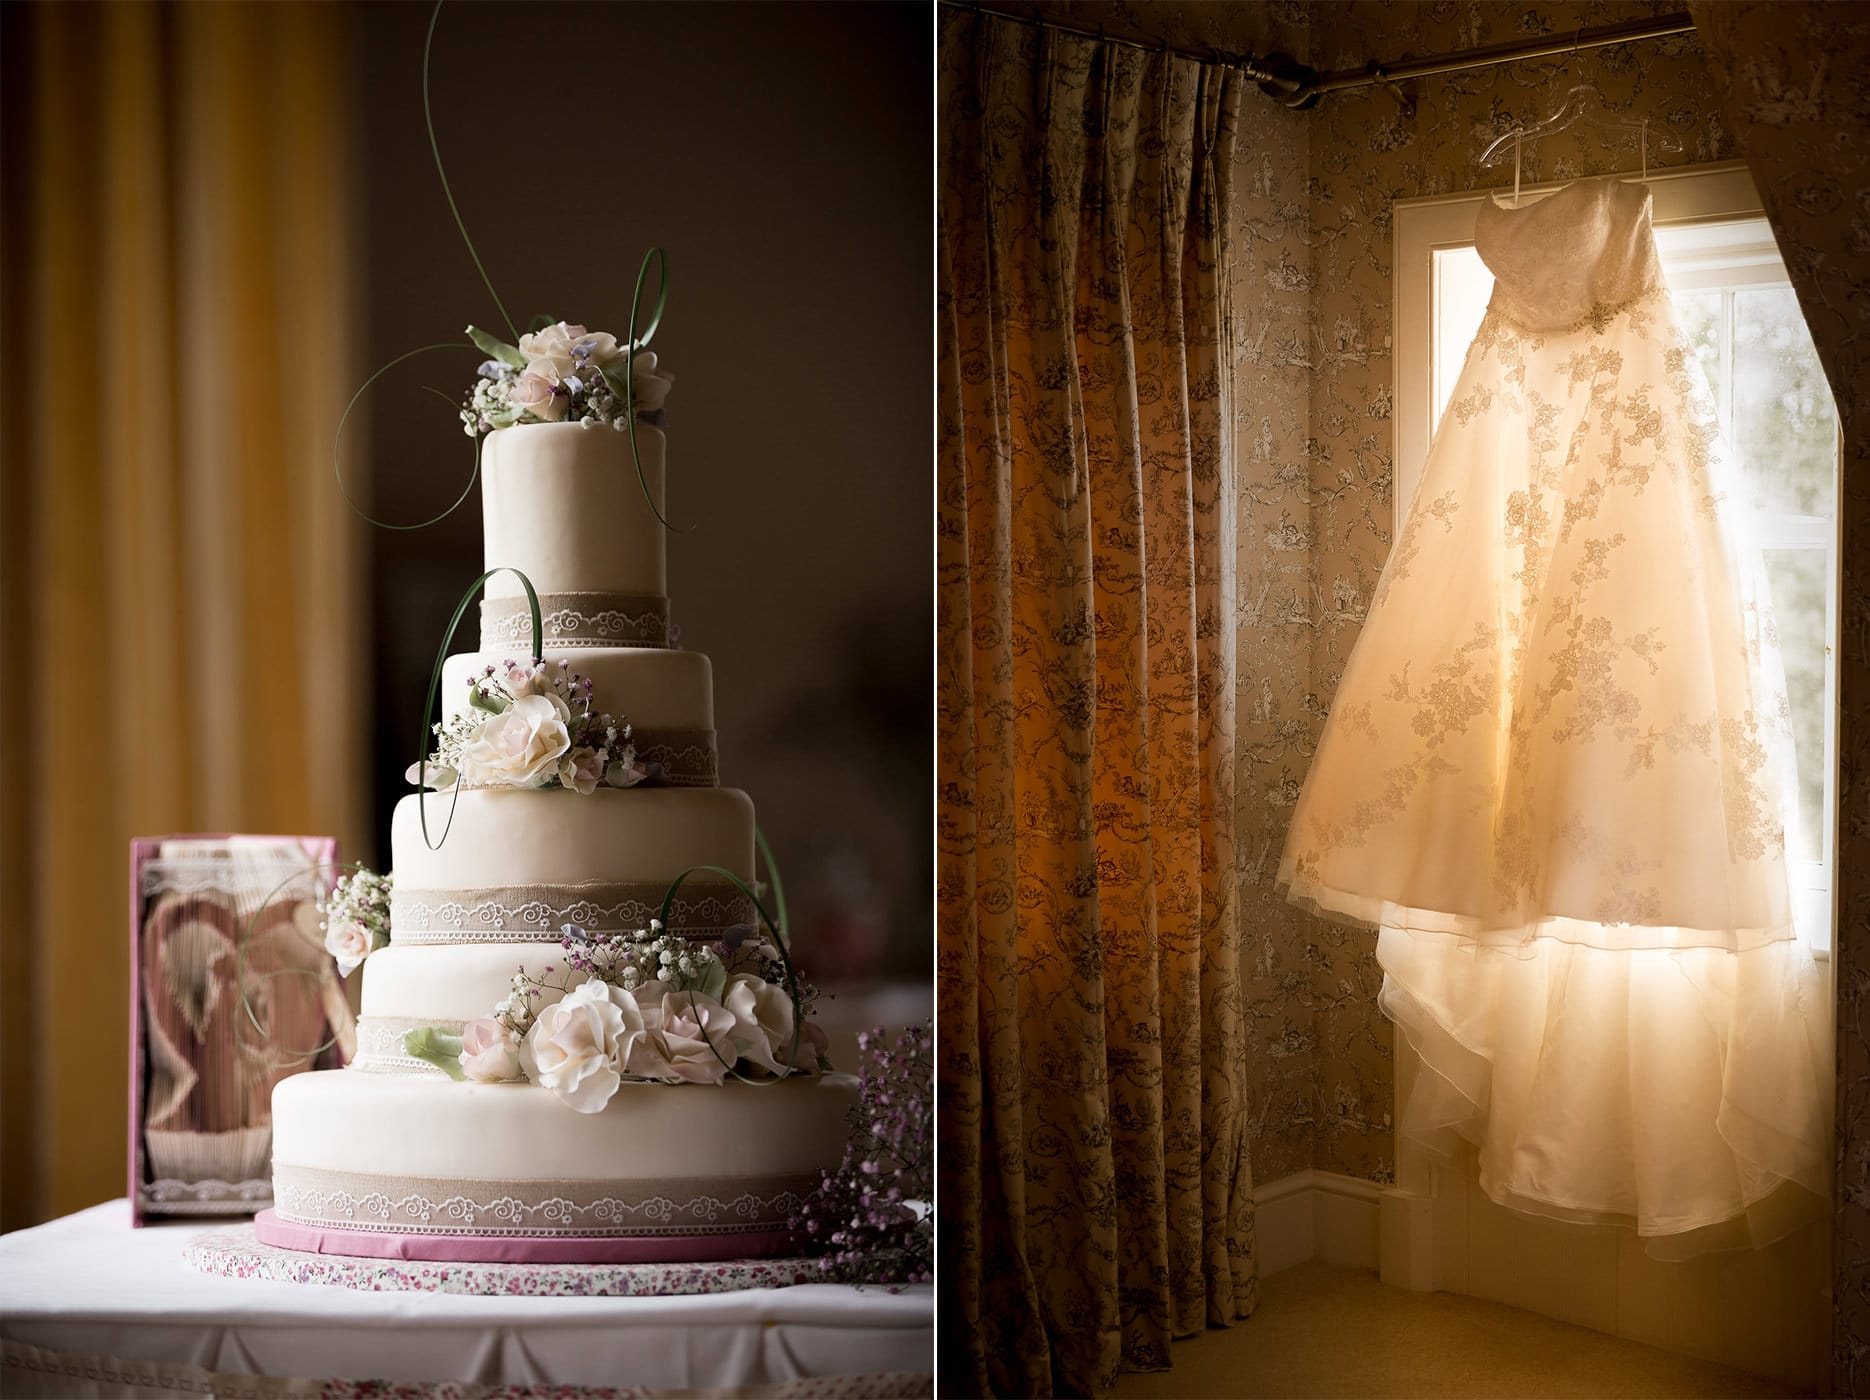 The wedding cake and bridal gown